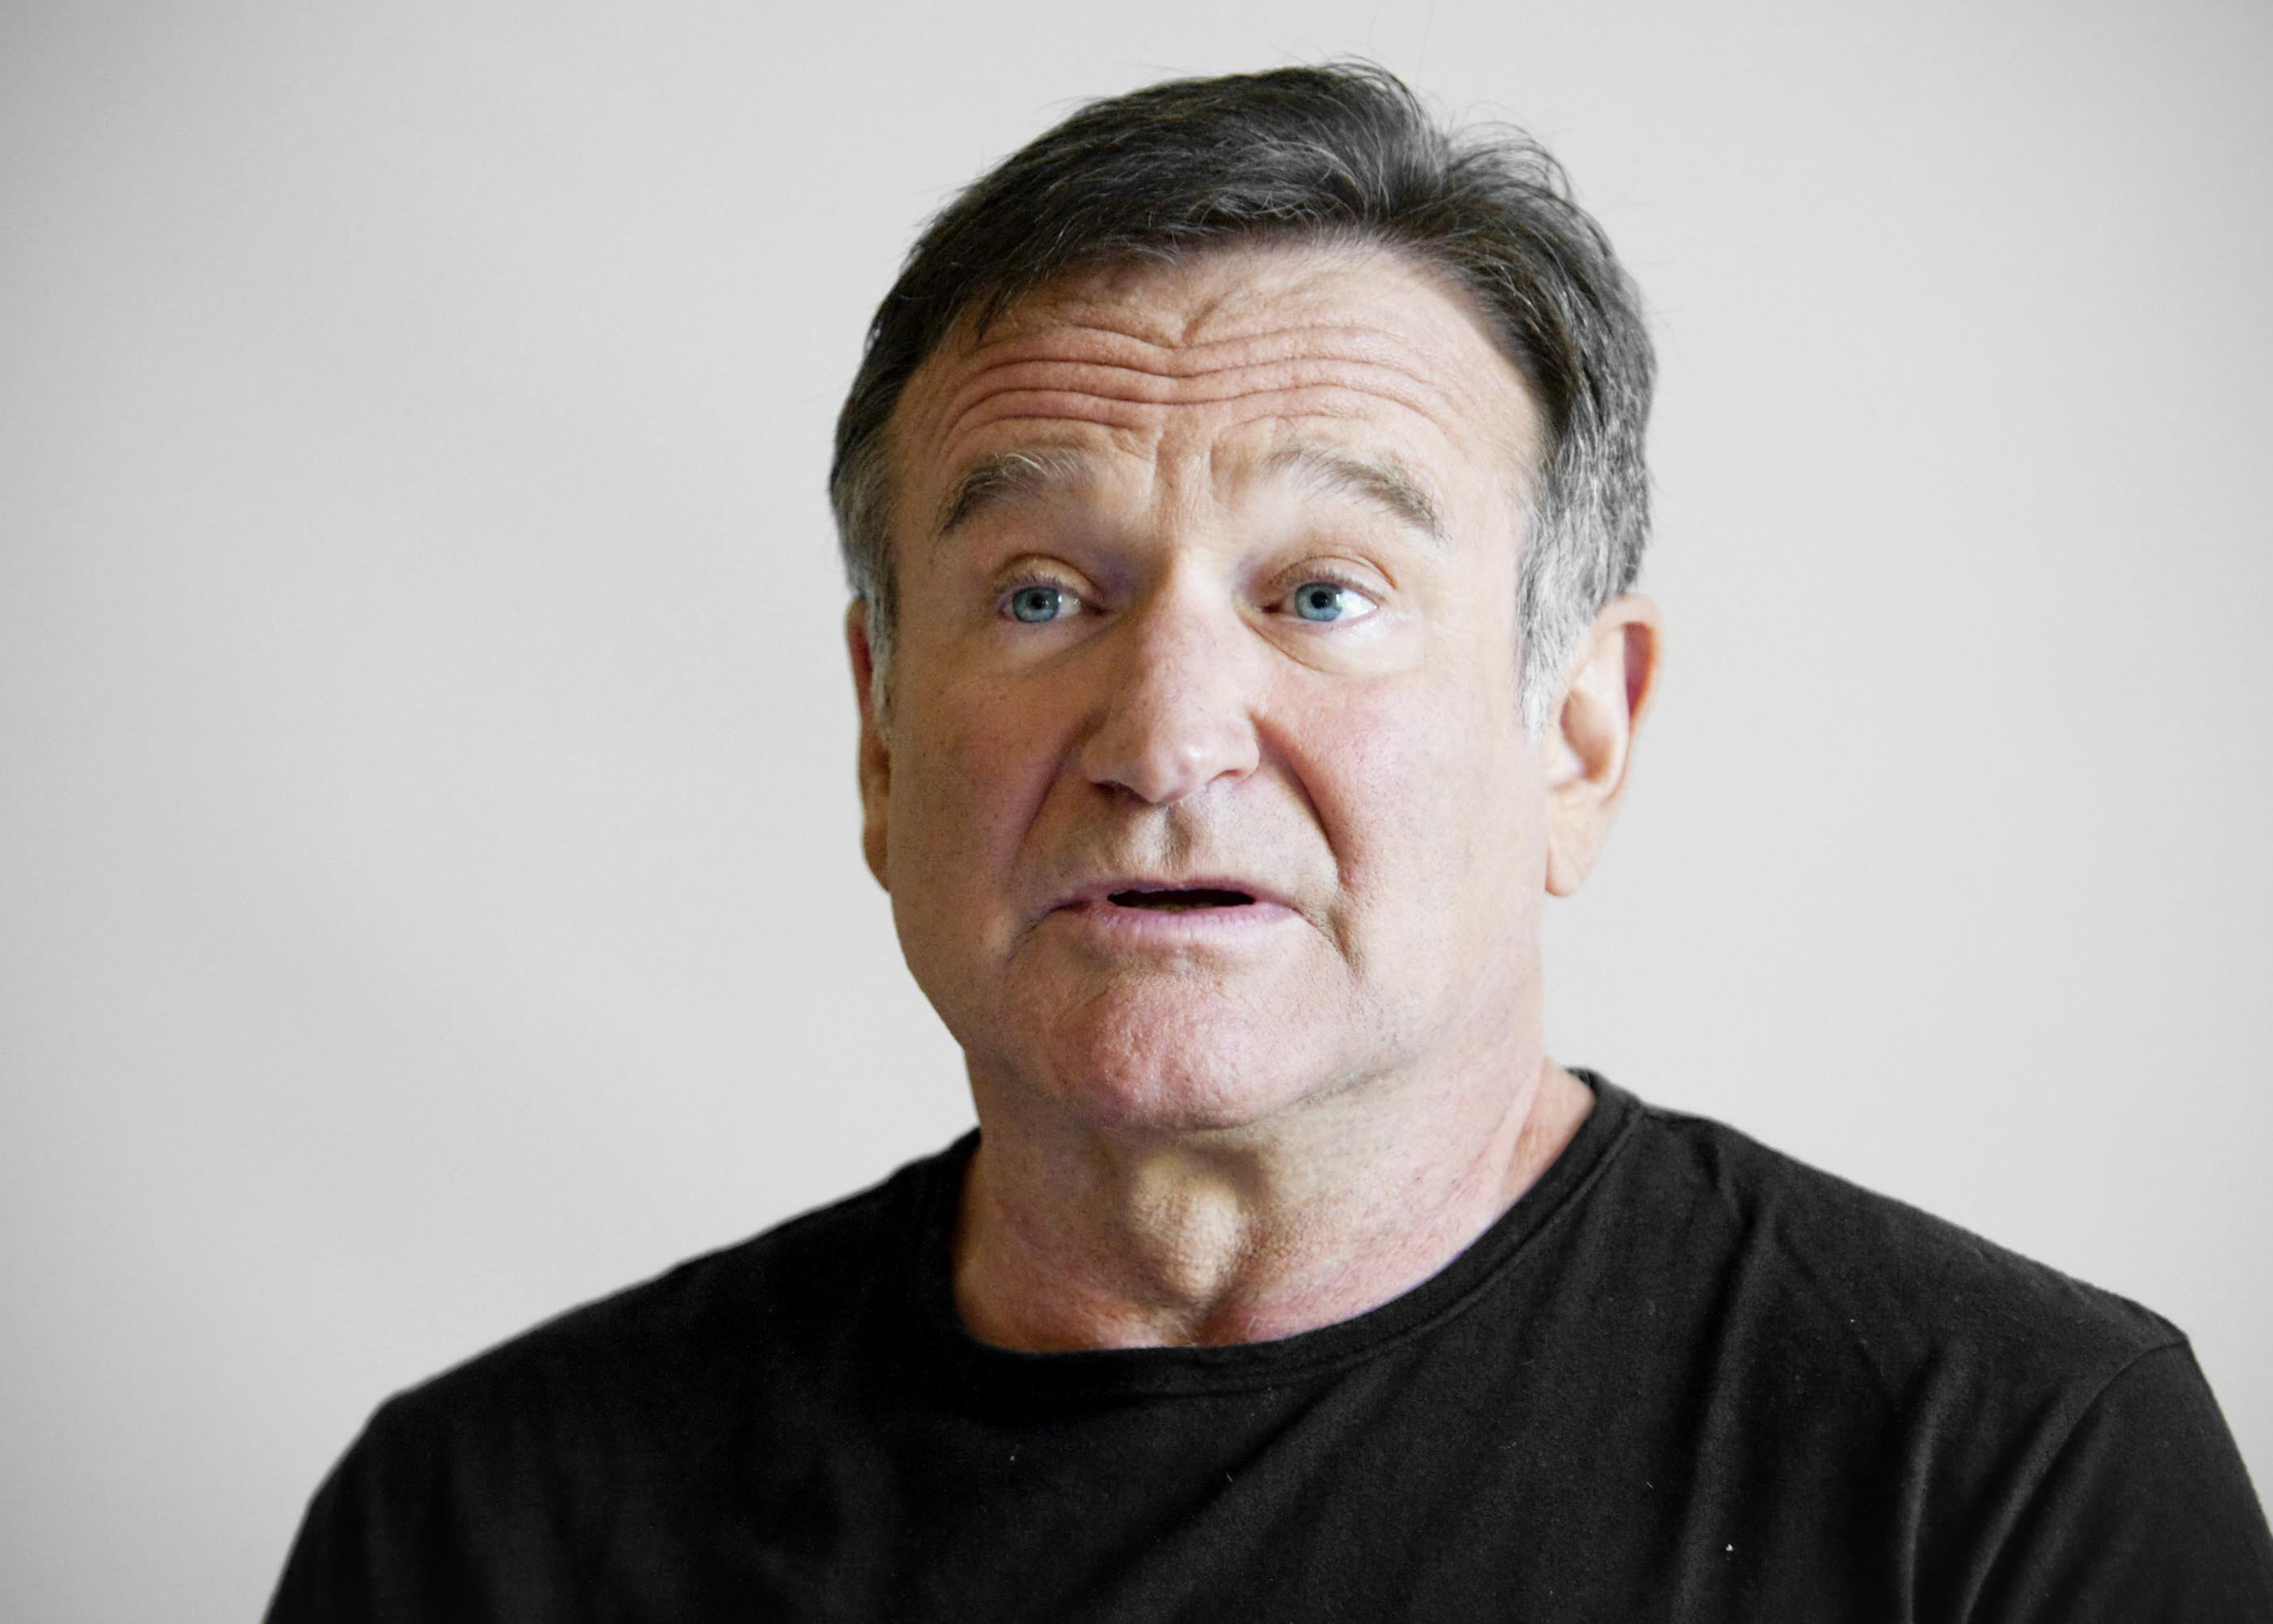 robin williams Listen to music from robin williams like friend like me, prince ali & more find the latest tracks, albums, and images from robin williams.